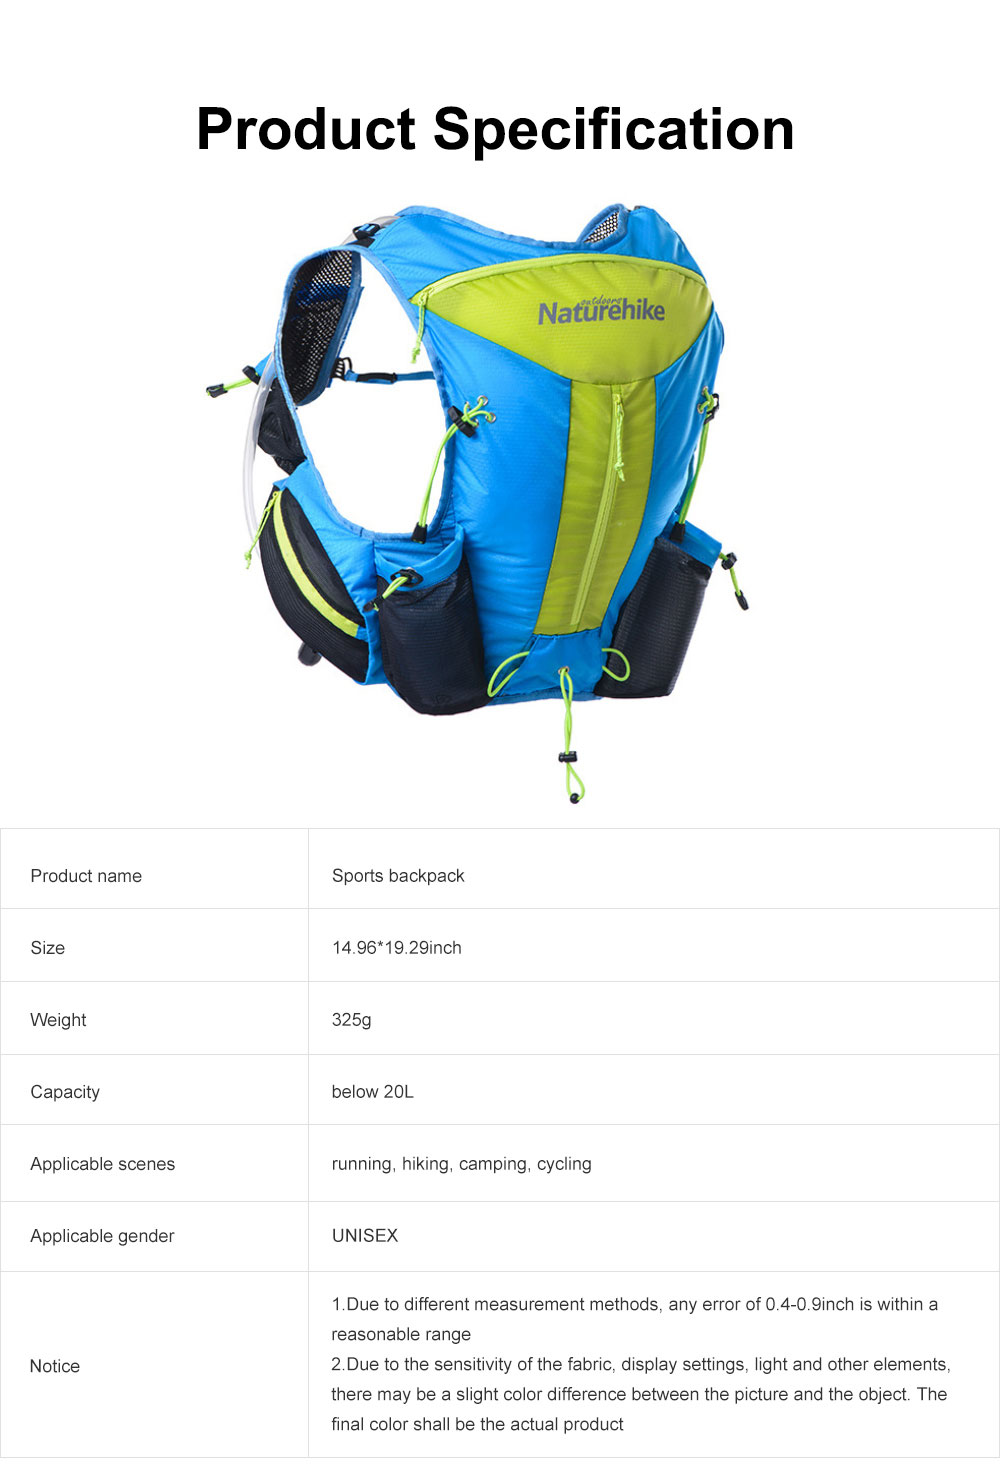 12L Sports Backpack, Ultralight Unisex Nylon Backpack, Hydration Pack Backpack for Travel Hiking Camping 6